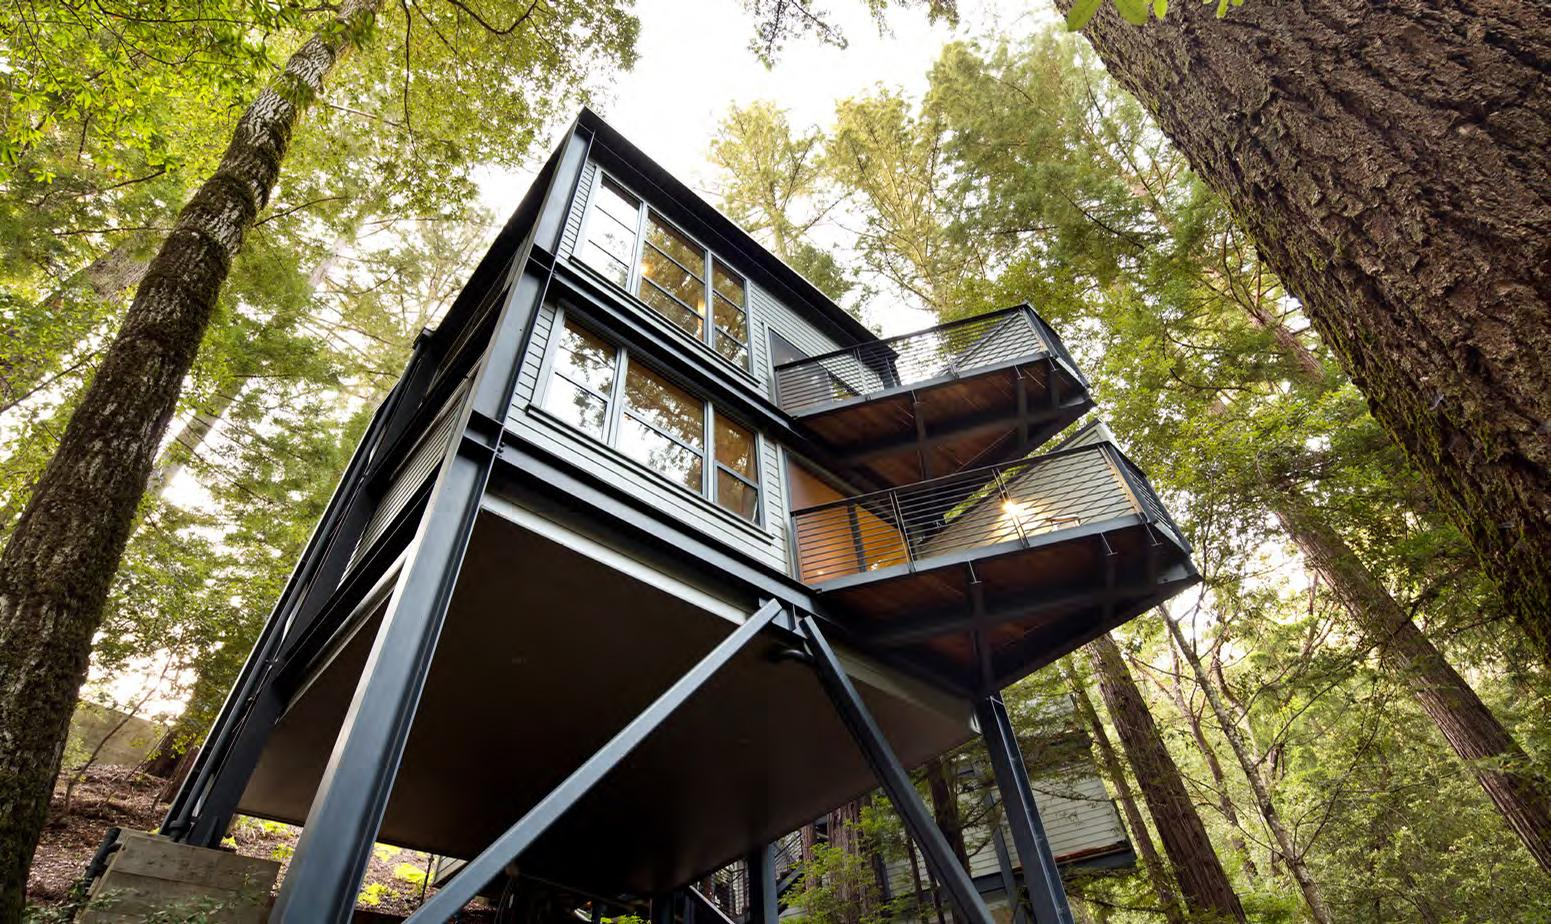 Formerly Stillheart Institute, Canyon Ranch Wellness Retreat – Woodside has been reimagined by Cole Martinez Curtis & Associates, and includes 14 bedrooms in the main lodge and 24 bedrooms in standalone luxury treehouses / Canyon Ranch